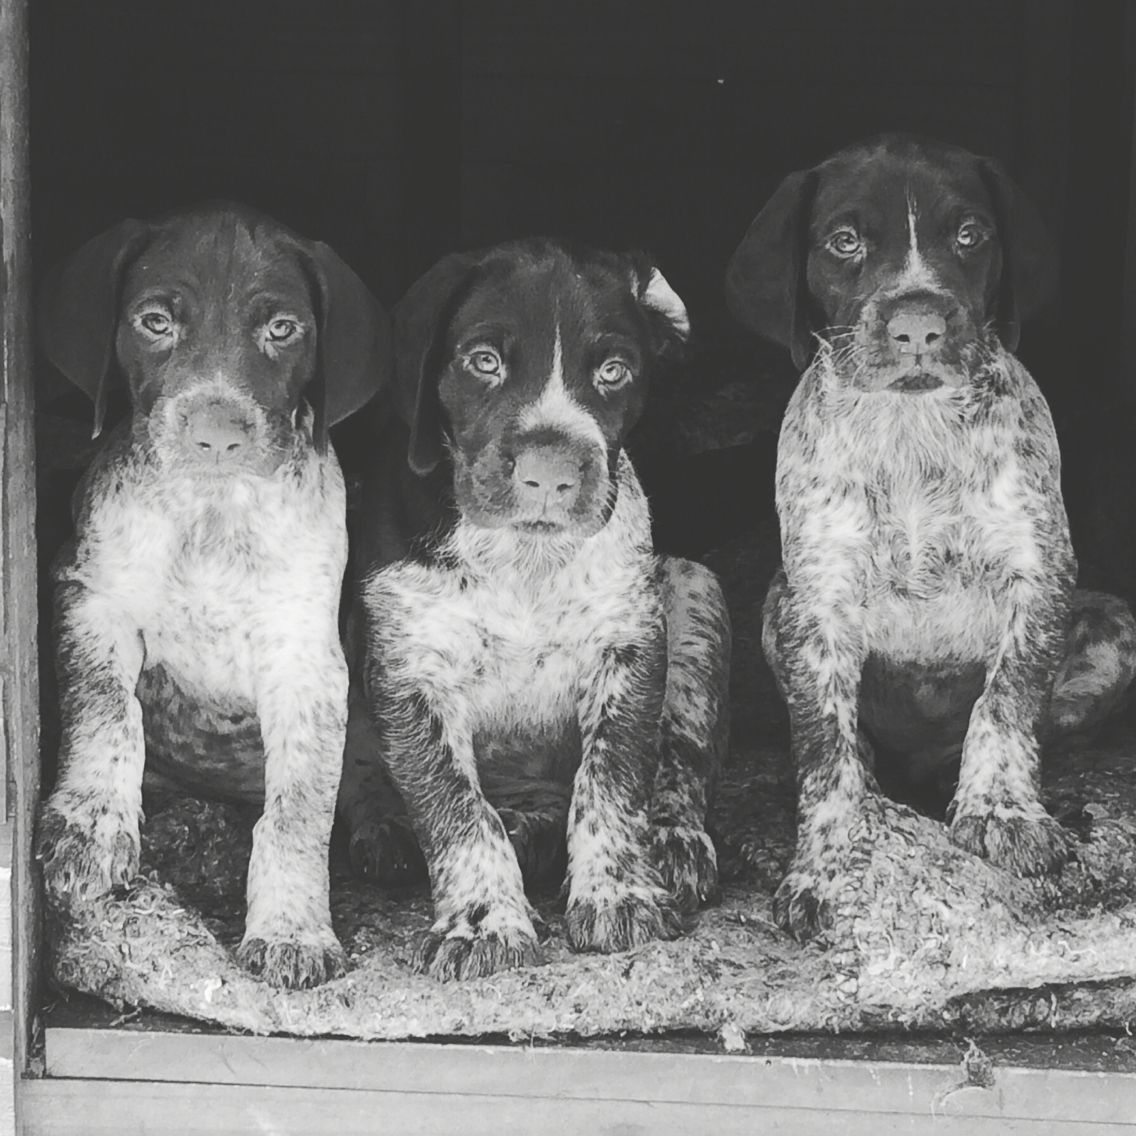 German Shorthaired Pointer Puppies 6 weeks